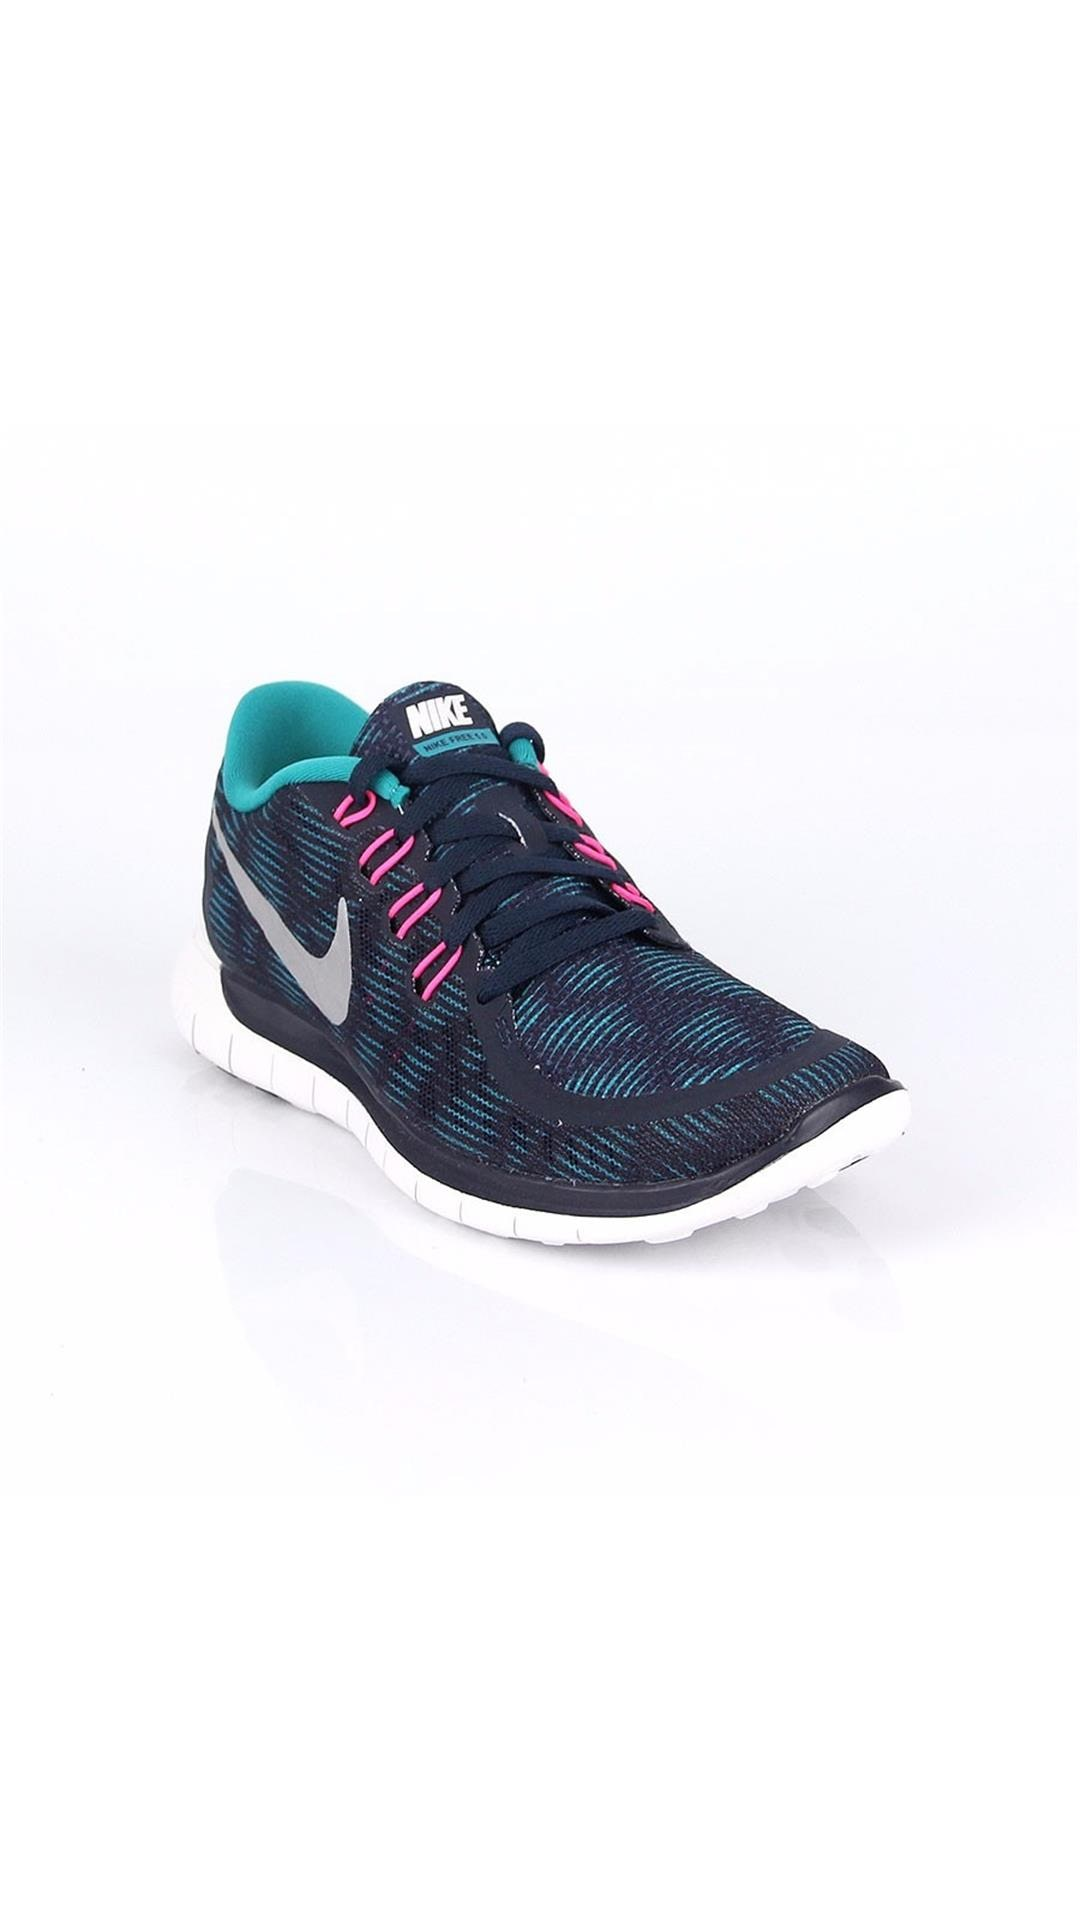 977835fd5a8f9 ... good nike womens free 5.0 print obsidian running shoes 56069 f5a76